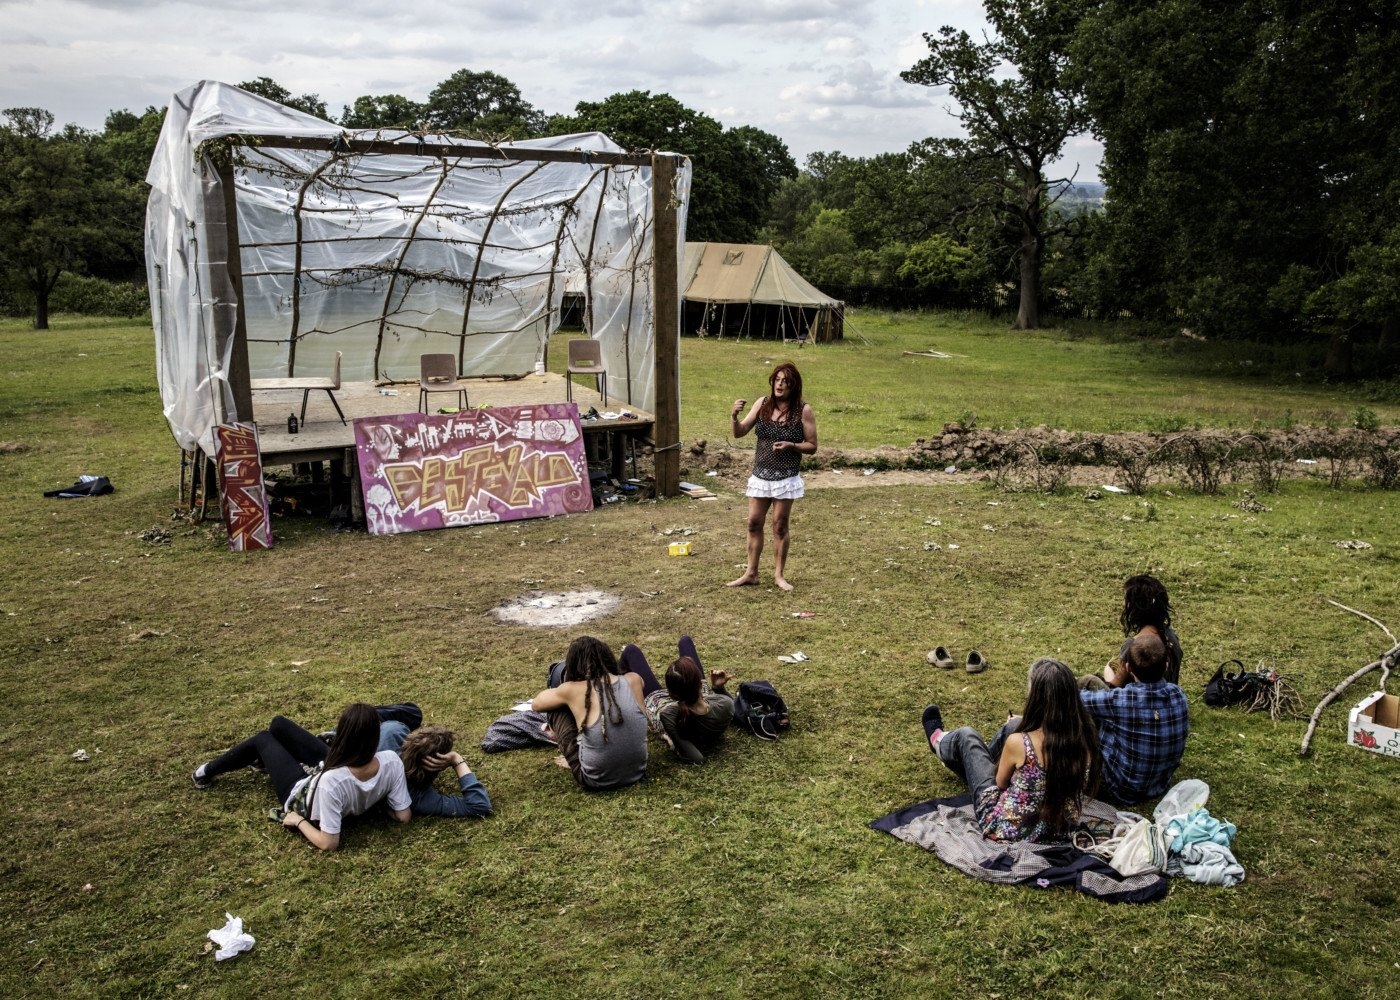 Dolores speaking to the flock, Runnymede, UK, 2015